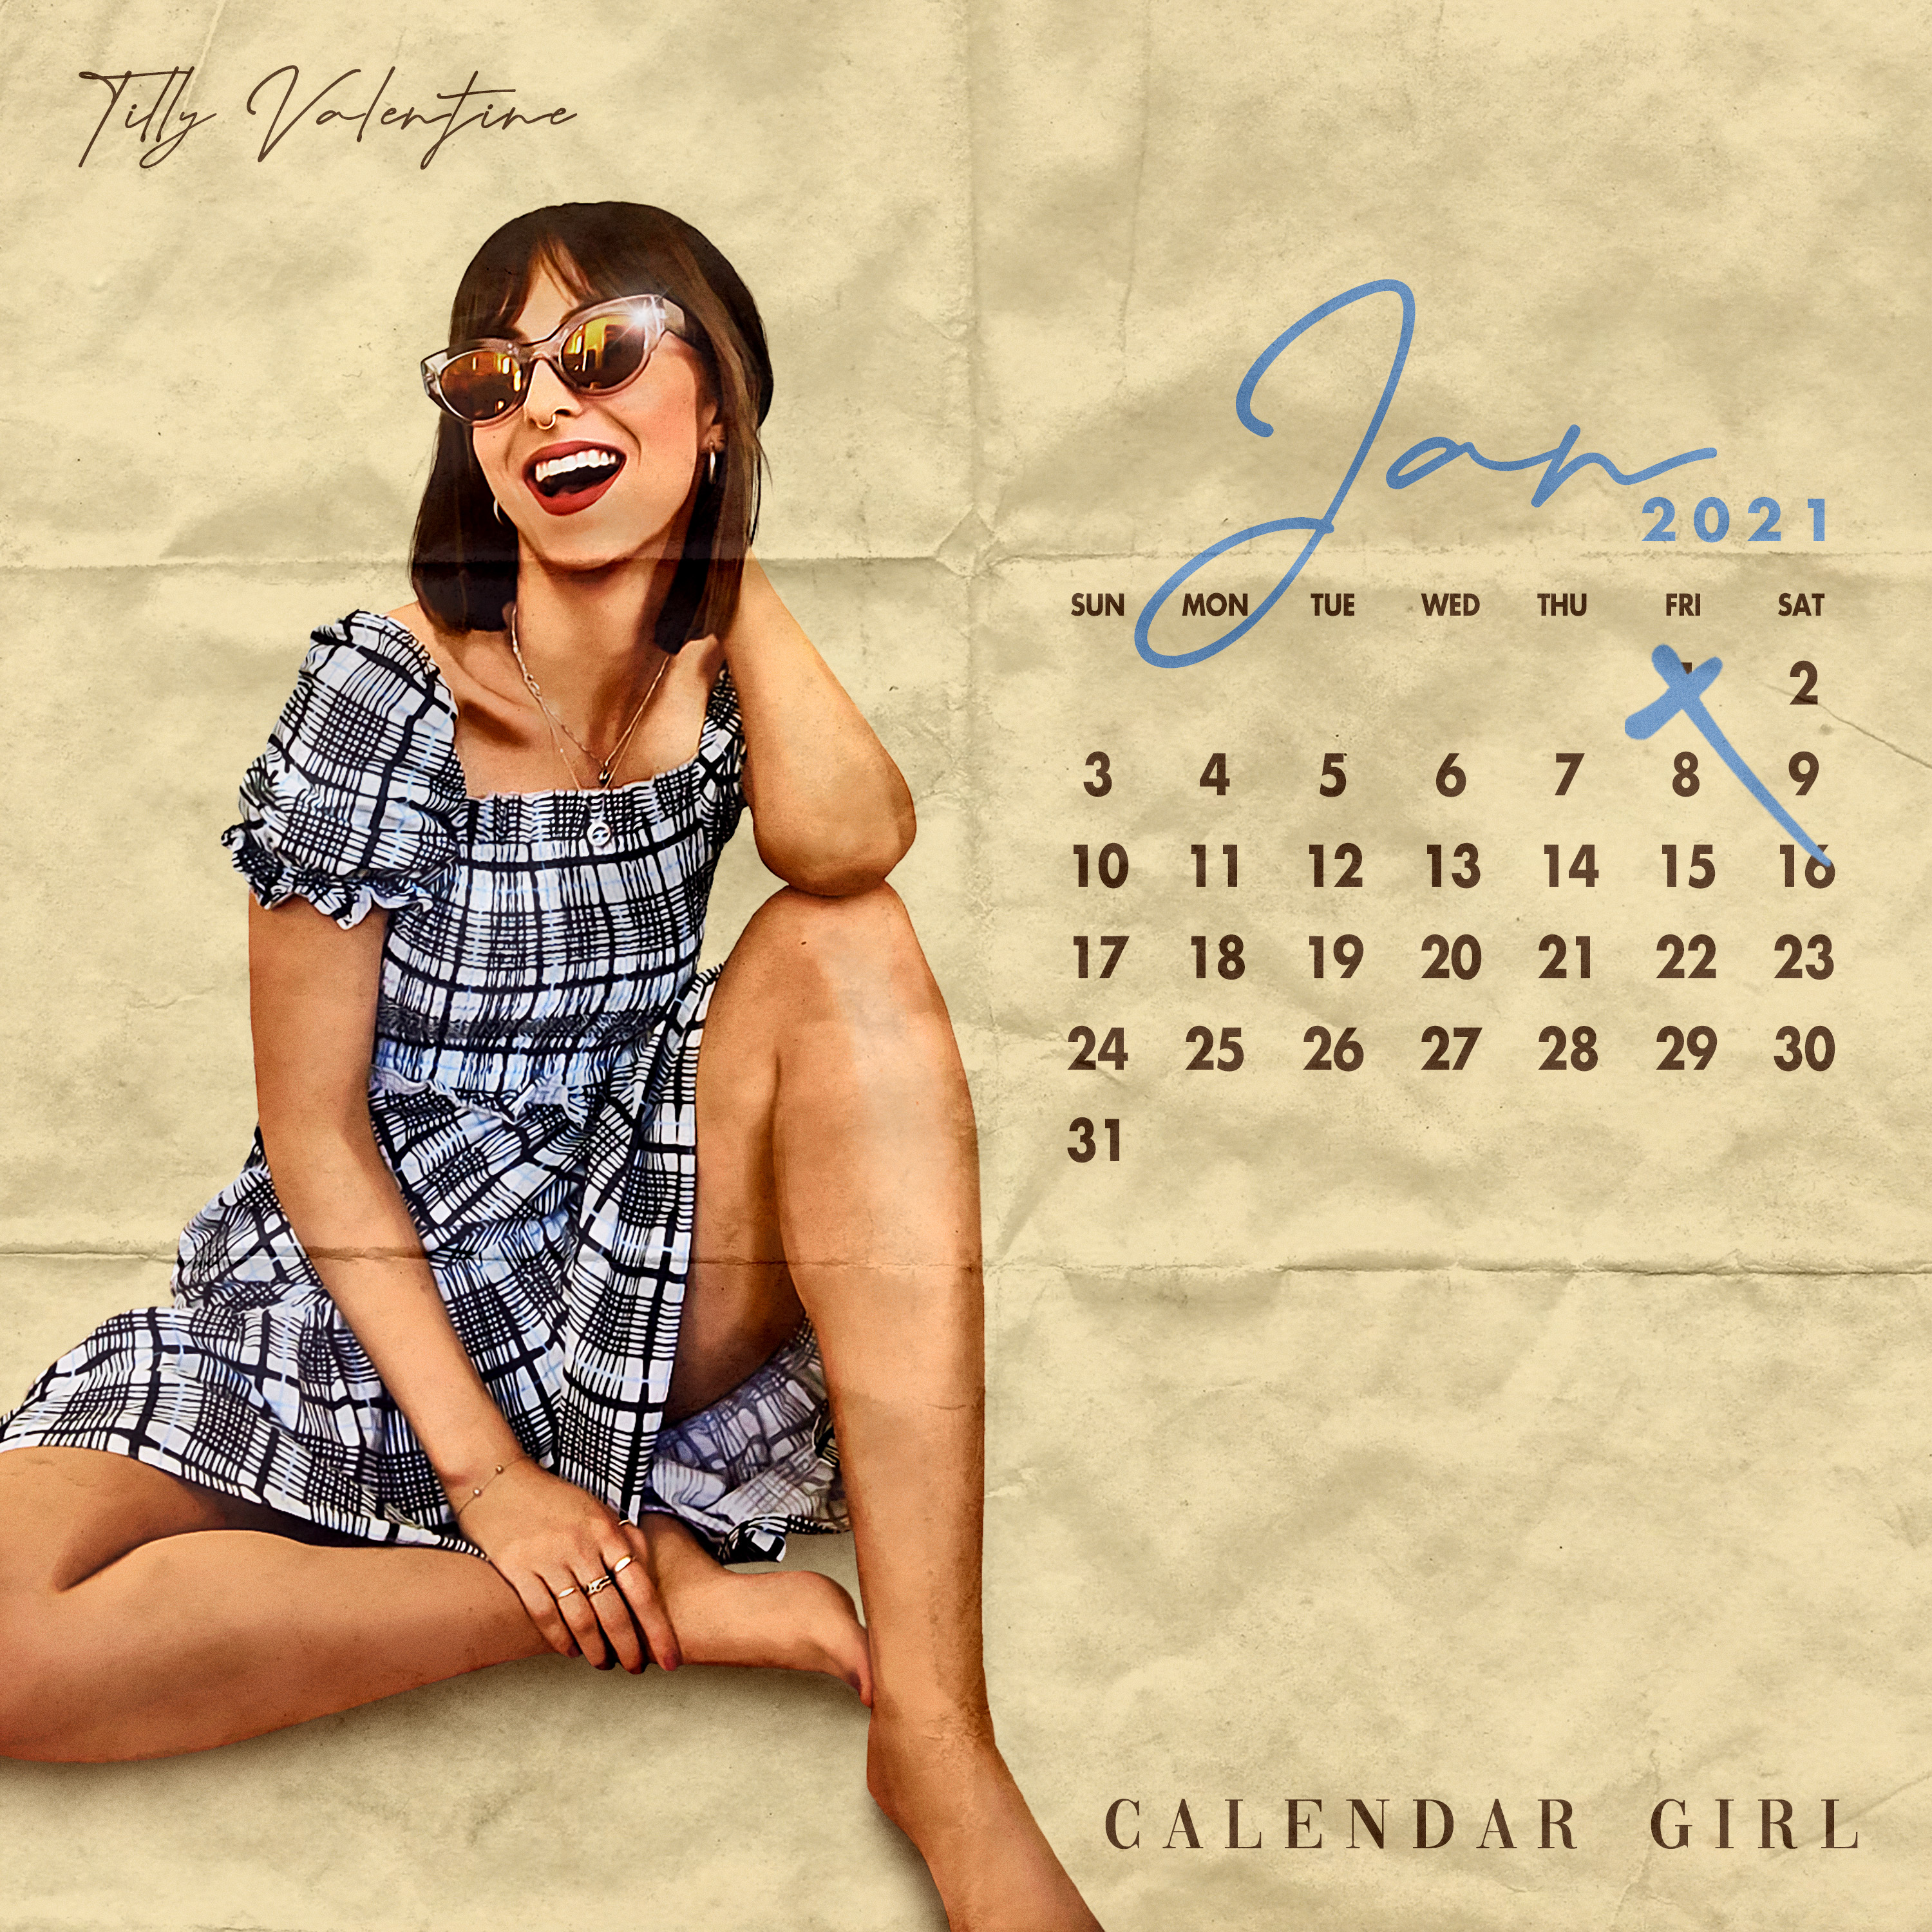 Tilly Valentine - Calendar Girl - Final